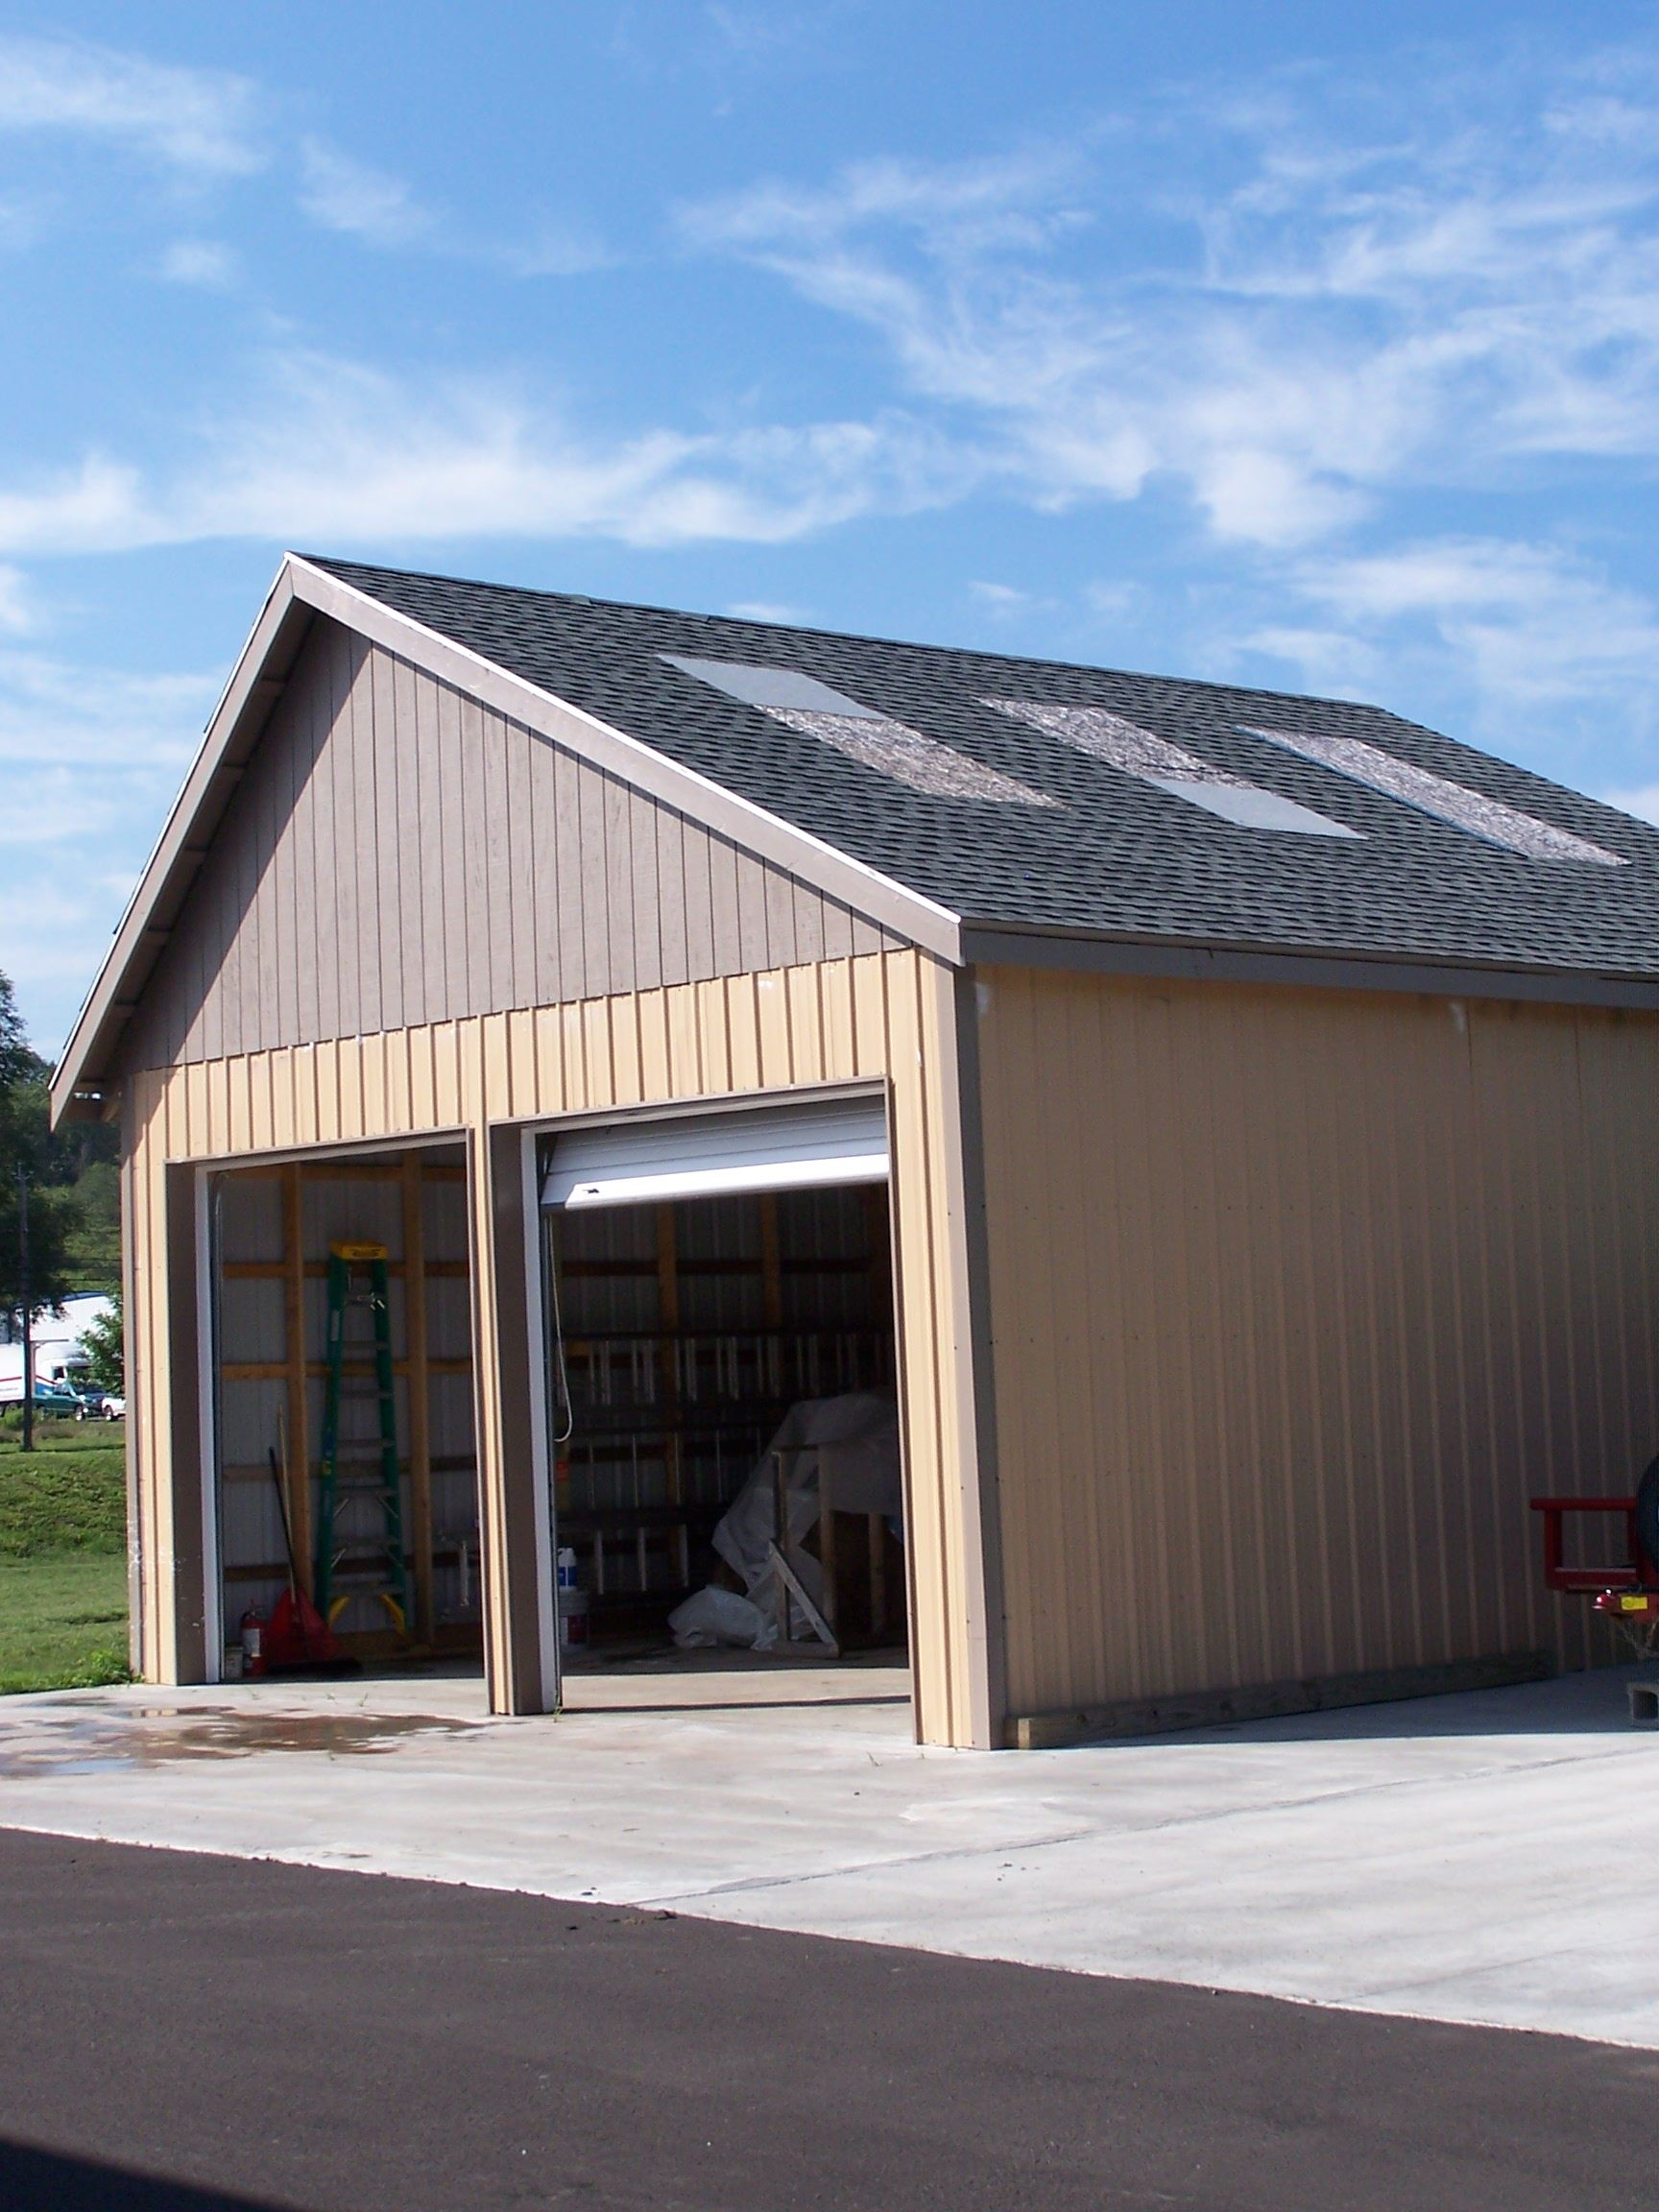 A building with two garage openings and a dual pitch roof vent simulator.